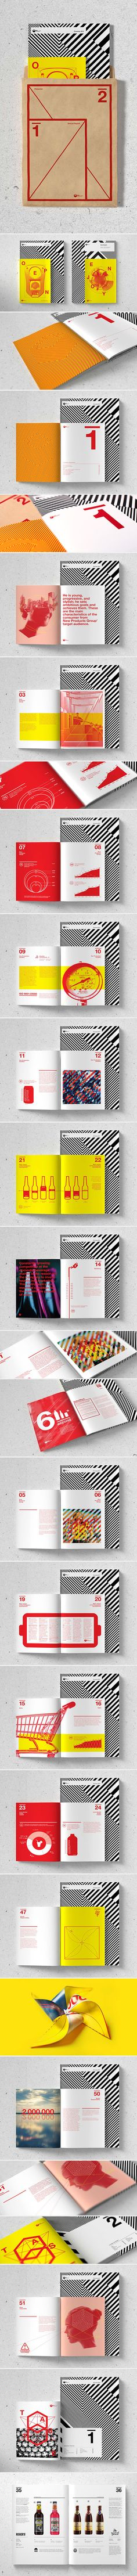 2-in-1 Annual Report & Presenter by Dima Tsapko